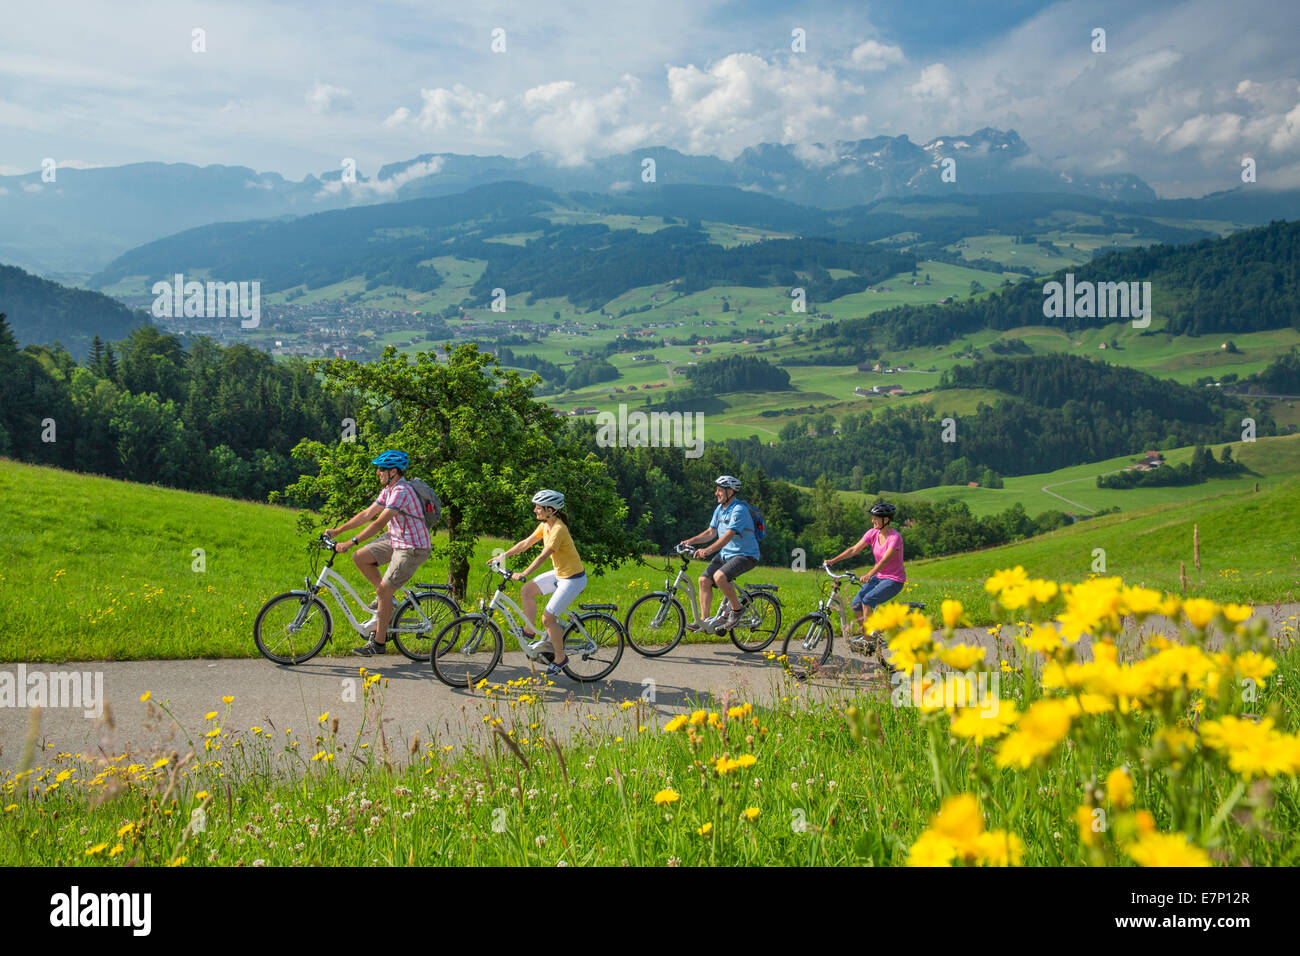 Heart route, biker, heart route, bicycle, bicycles, bike, riding a bicycle, canton, Appenzell, Innerroden, Flyer, - Stock Image